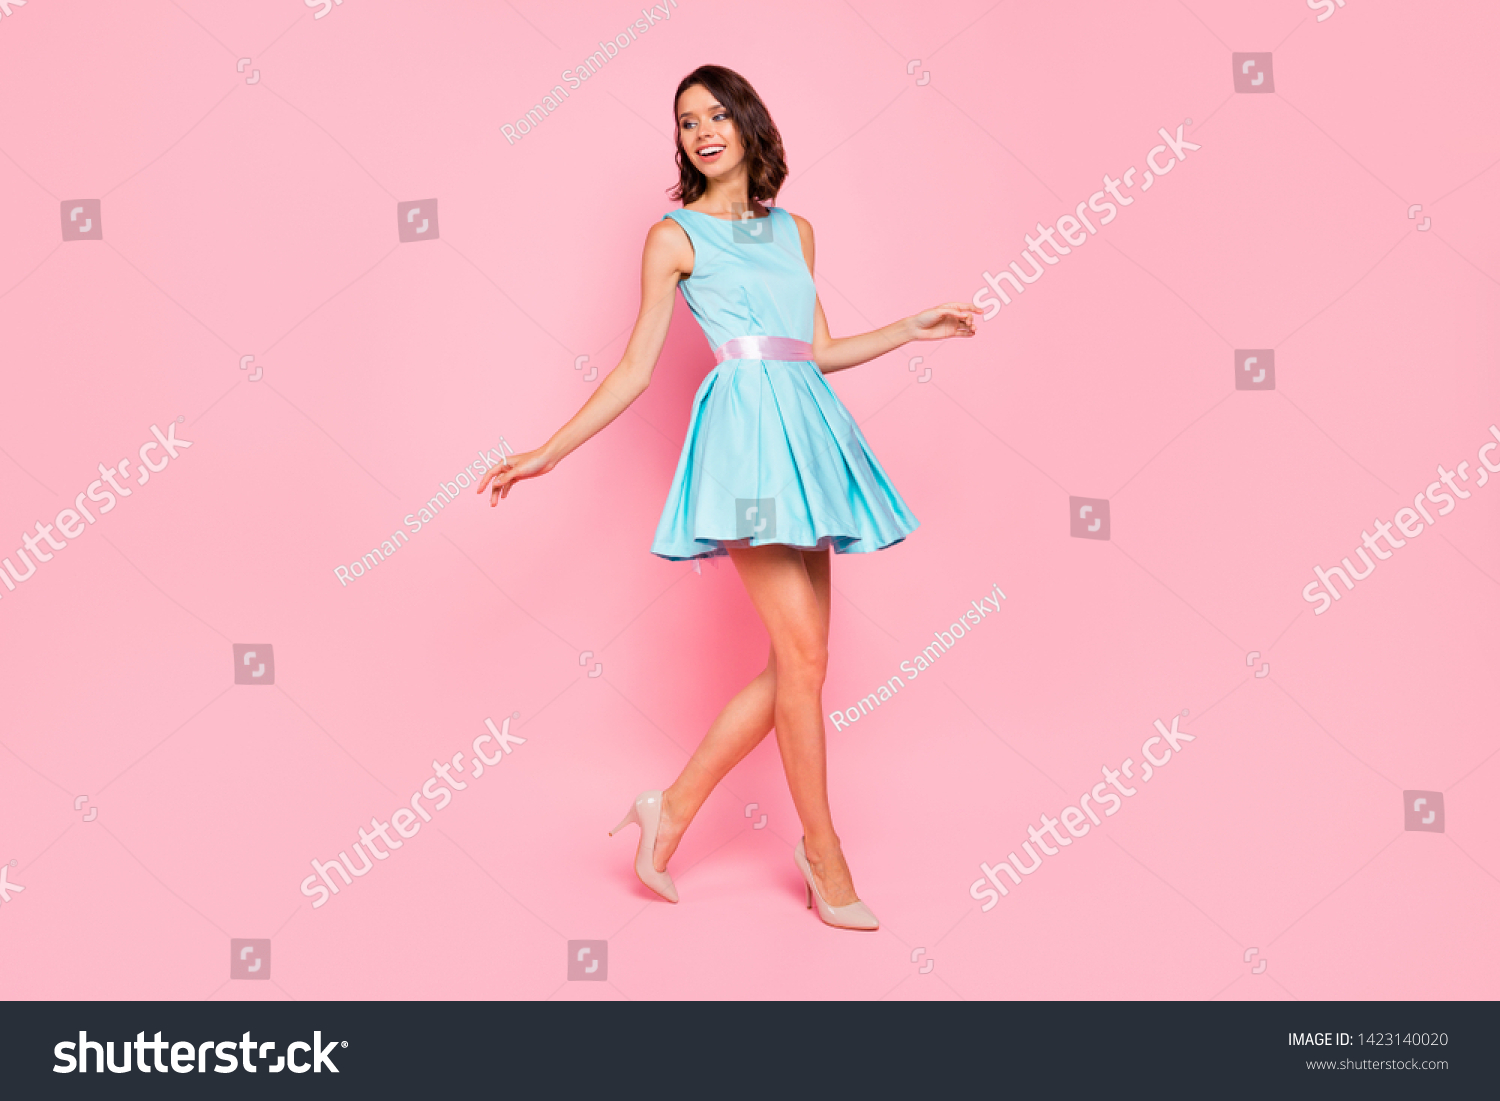 Full length side profile body size photo beautiful she her lady going graduation college university school walking street wear high-heels colorful blue dress isolated pink bright vivid background #1423140020